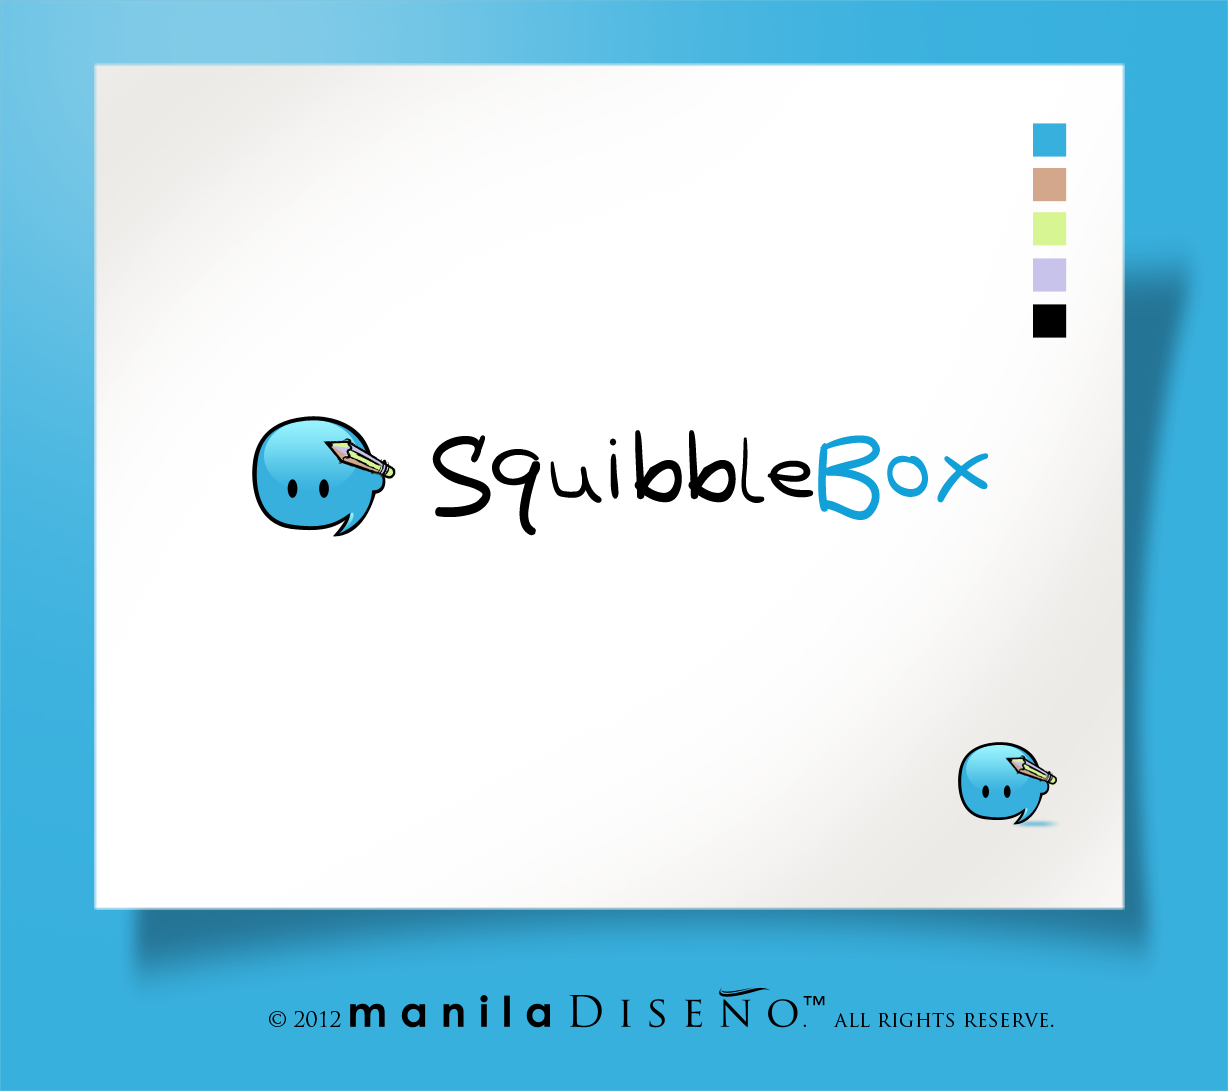 SquibbleBox needs an awesome logo